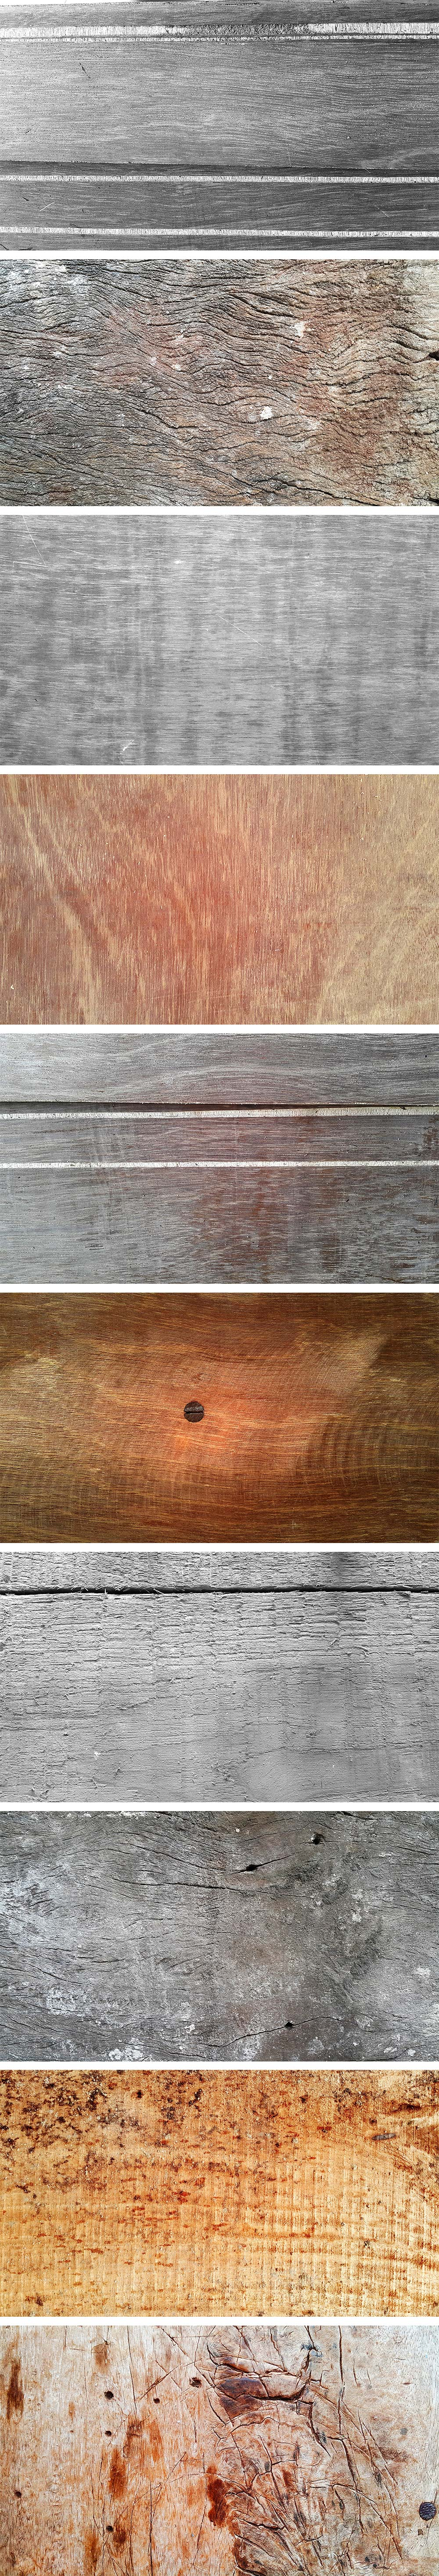 Withered Wood Textures